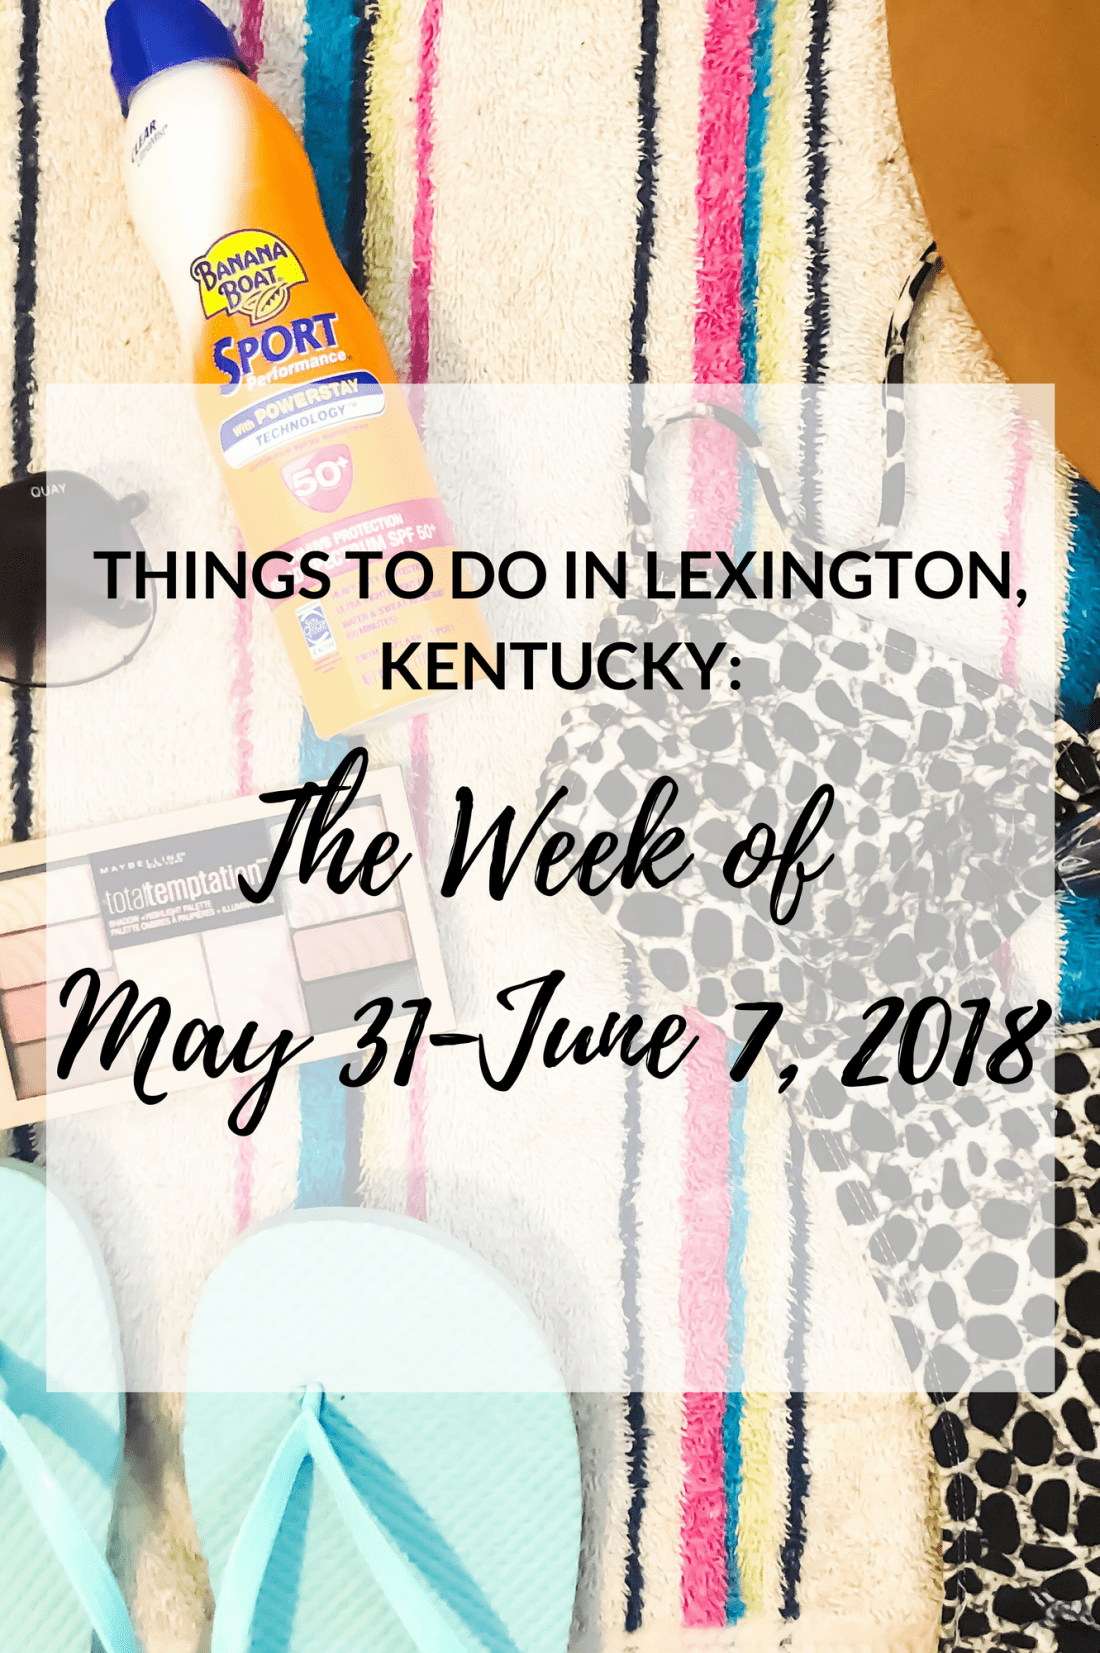 We've made it through another month!! I've put together a list of events for the upcoming week, so you can be entertained. However, this time, I've handpicked the events and included the ones that I think everyone would enjoy the most! #sharethelex #travelky #visitlex #lexingtonky #kentucky #shoplocal #spring #summer #thingstodo #event